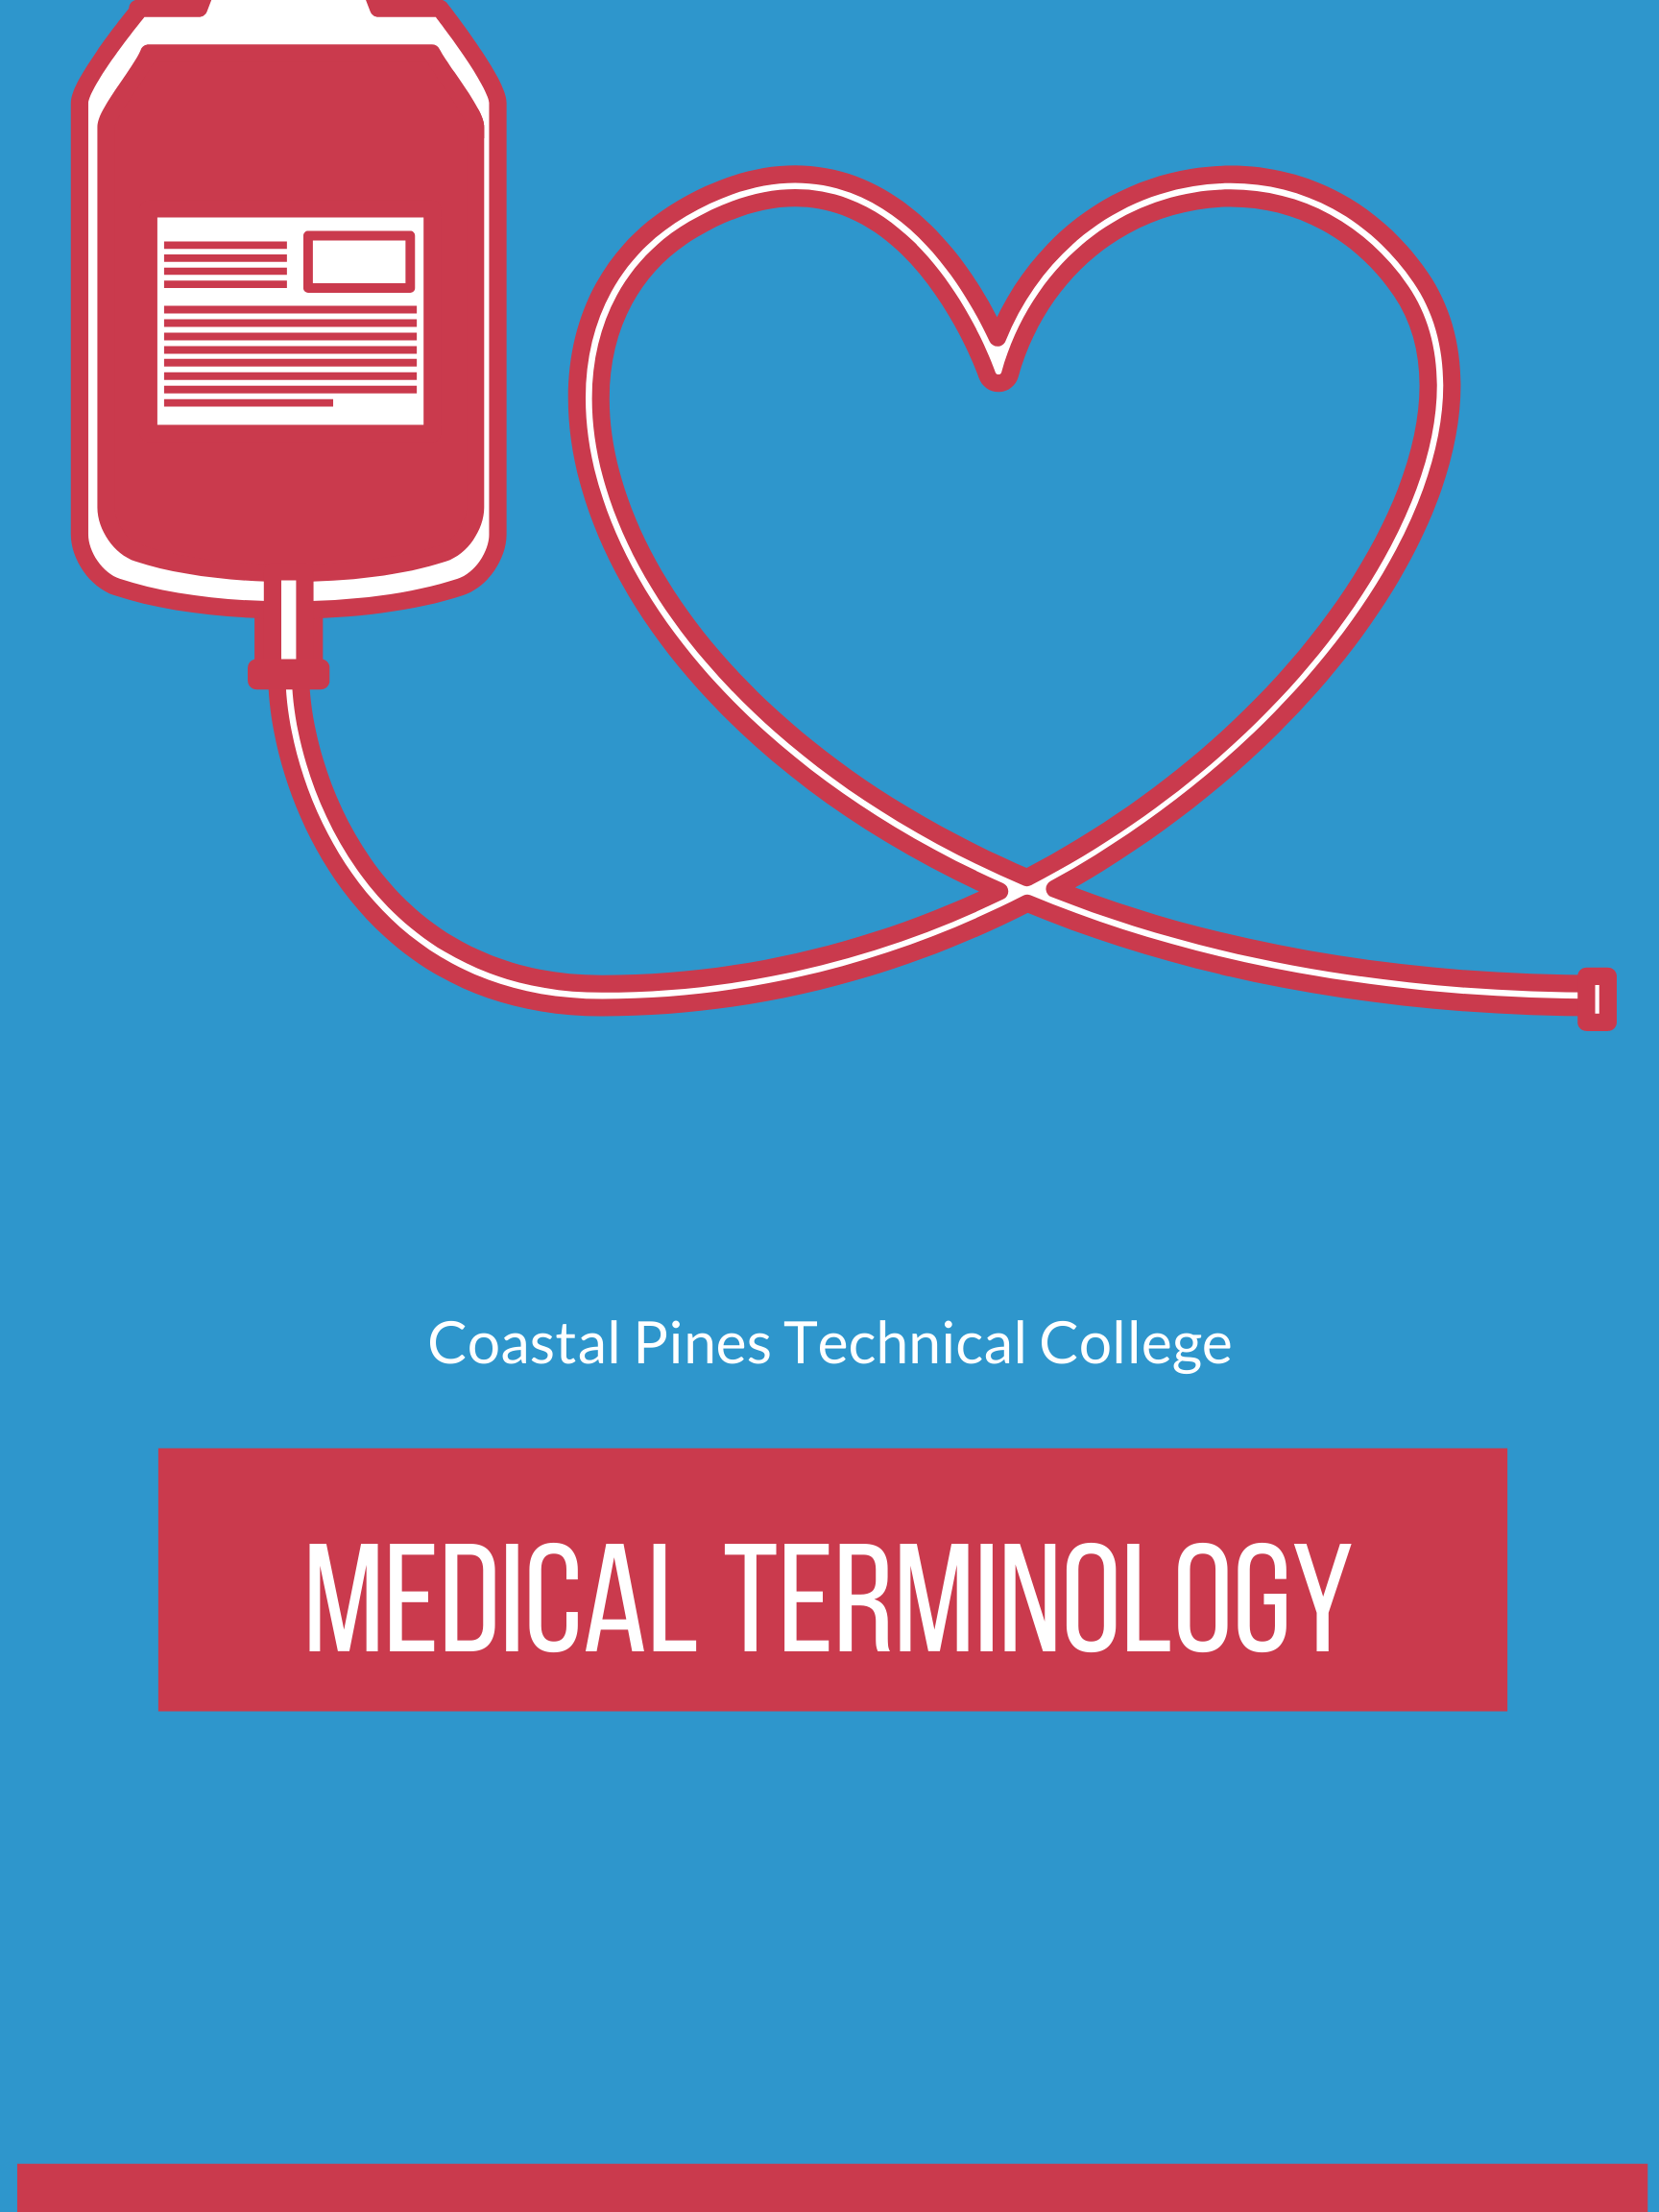 Coastal Pines Technical College APA Style Guide